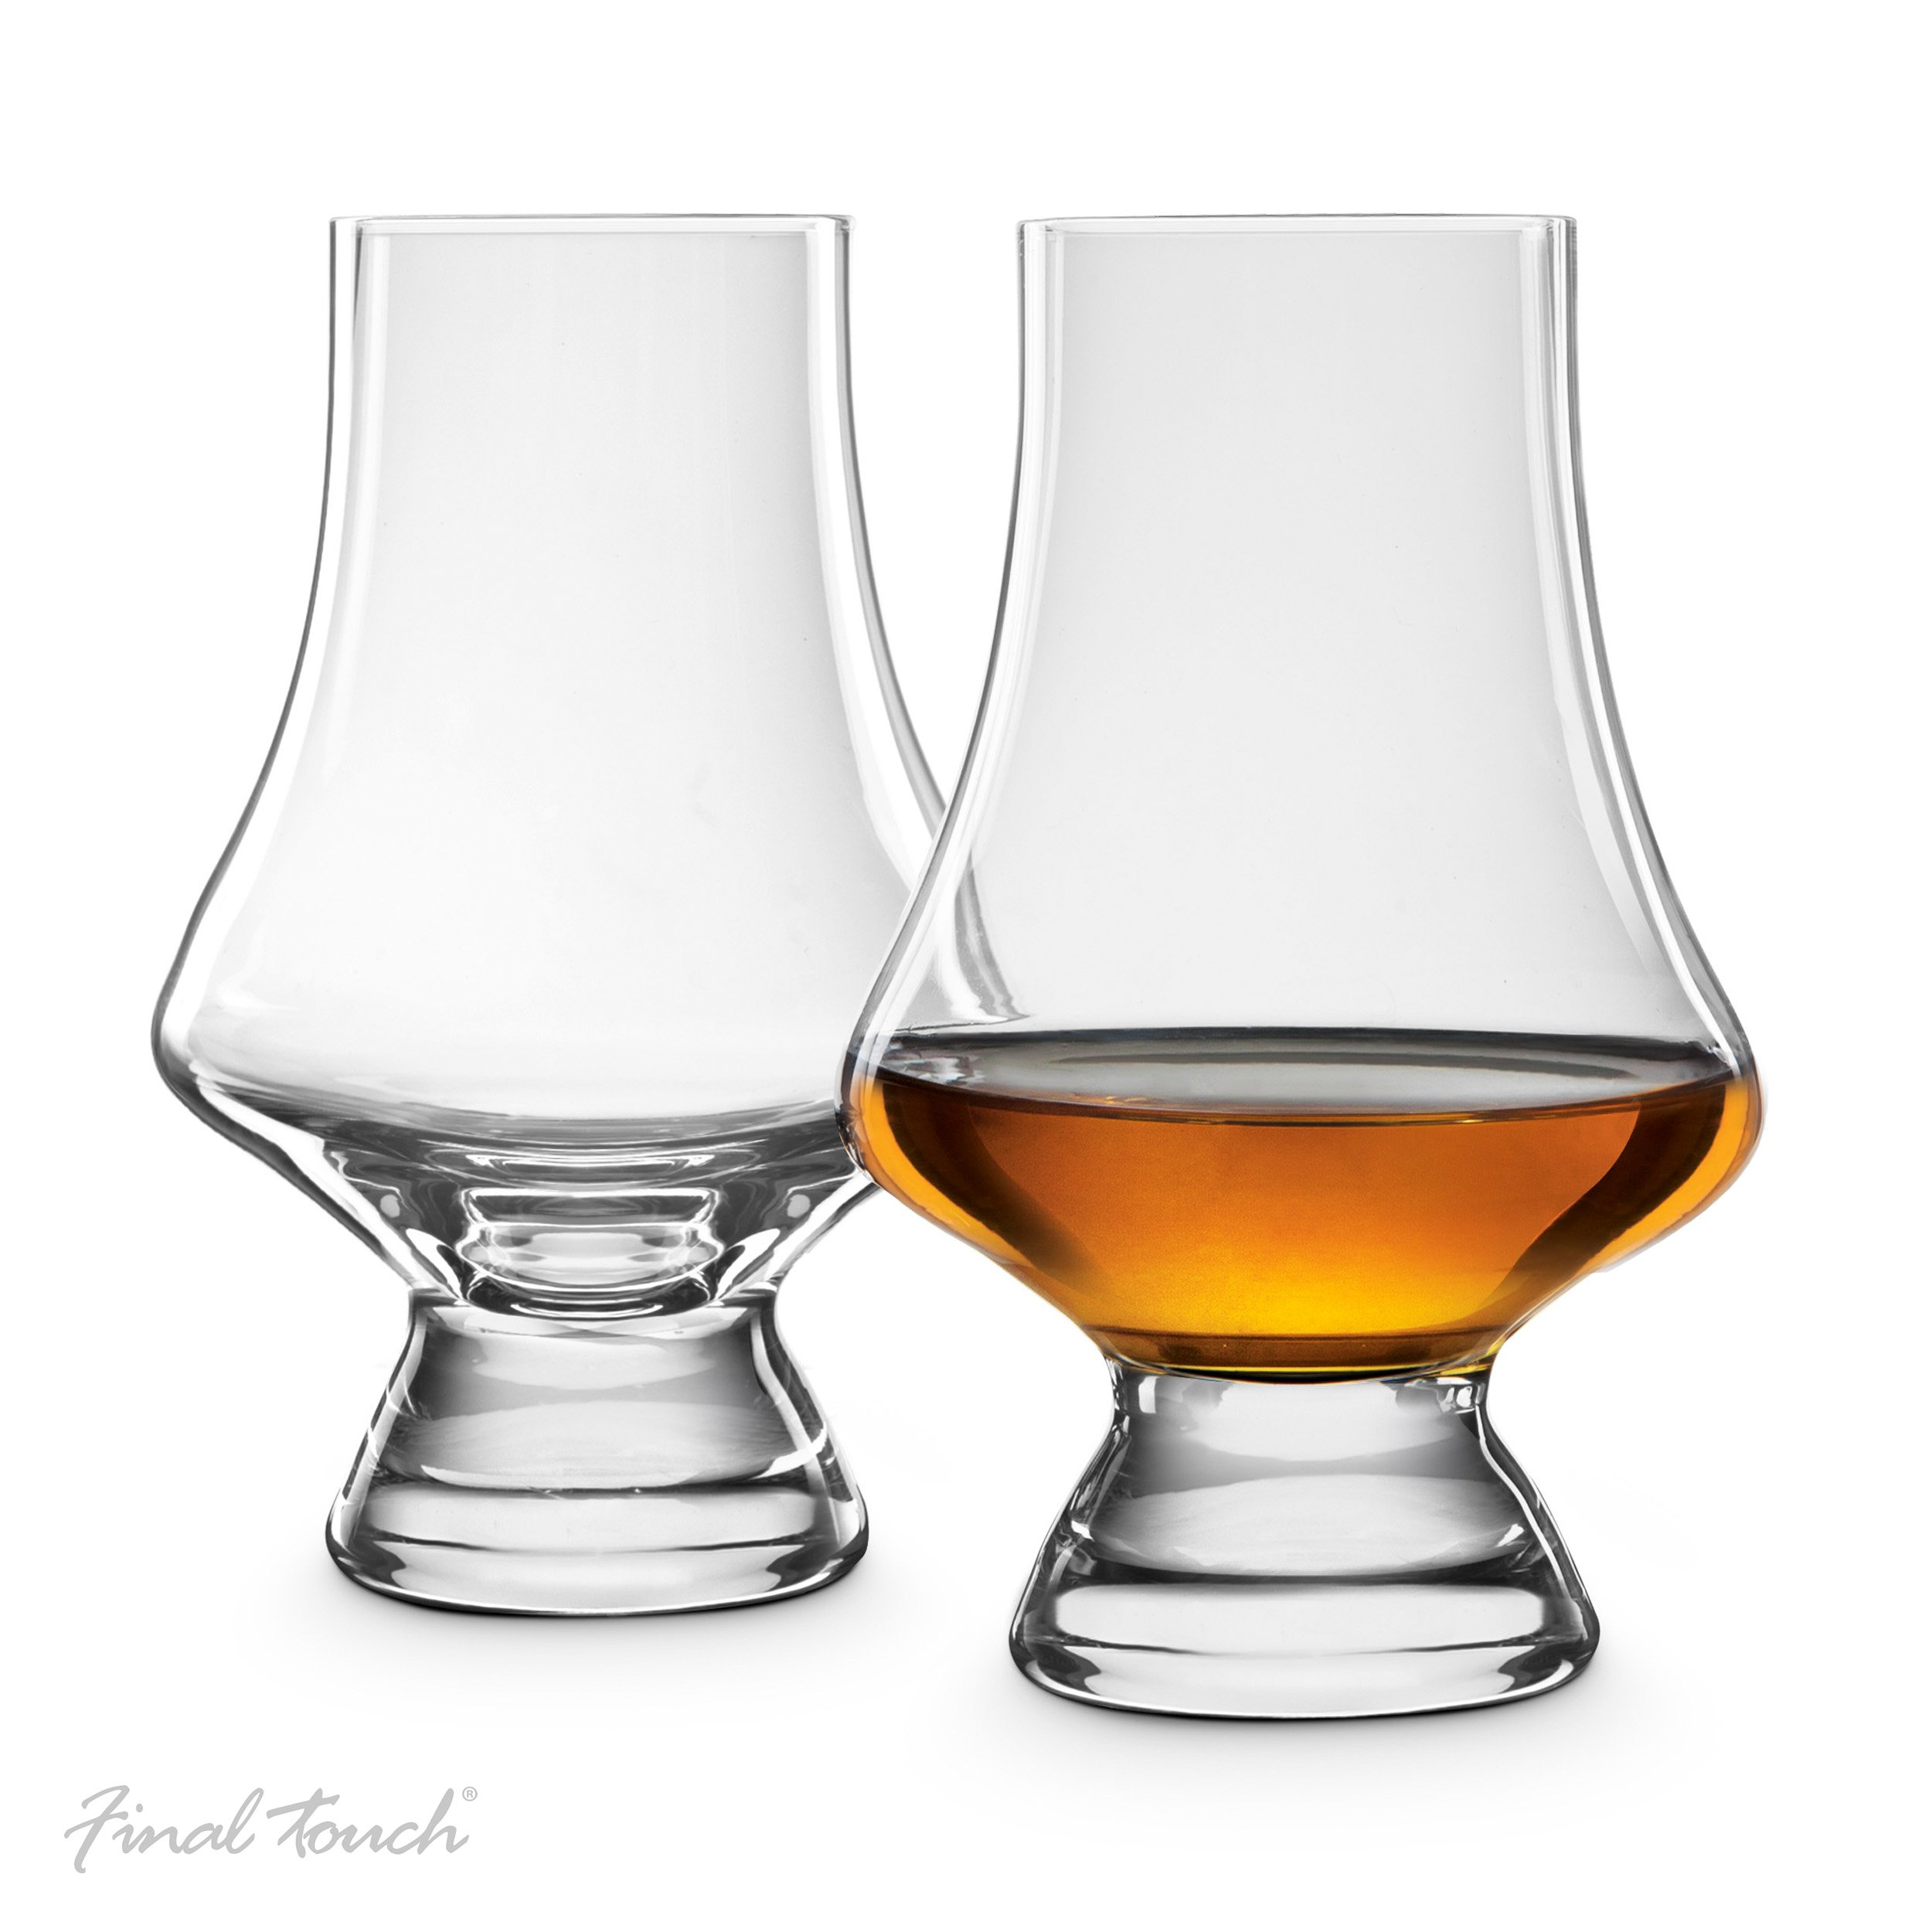 Final Touch Lead-Free Crystal Tasting Glasses - Hand Crafted for Whiskey, Set of 2